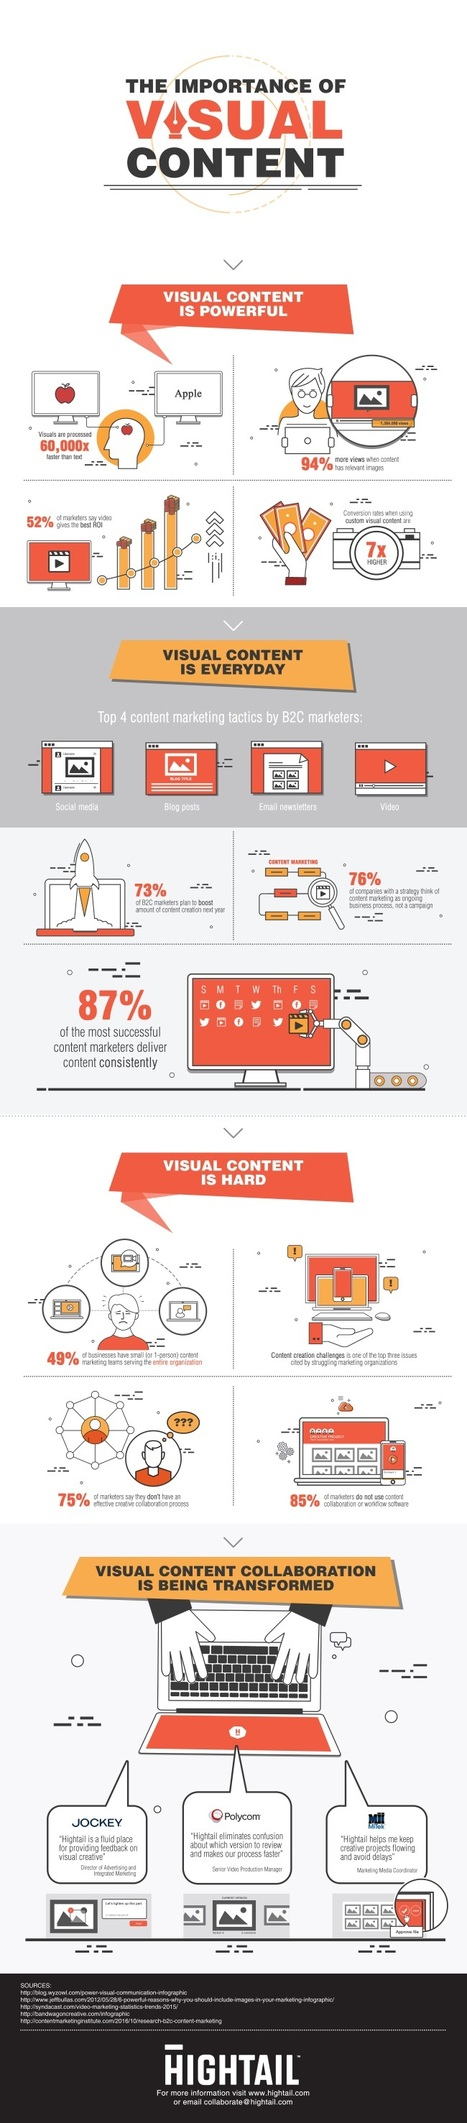 Video Is Increasingly Important in Content Marketing #Infographic | MarketingHits | Scoop.it